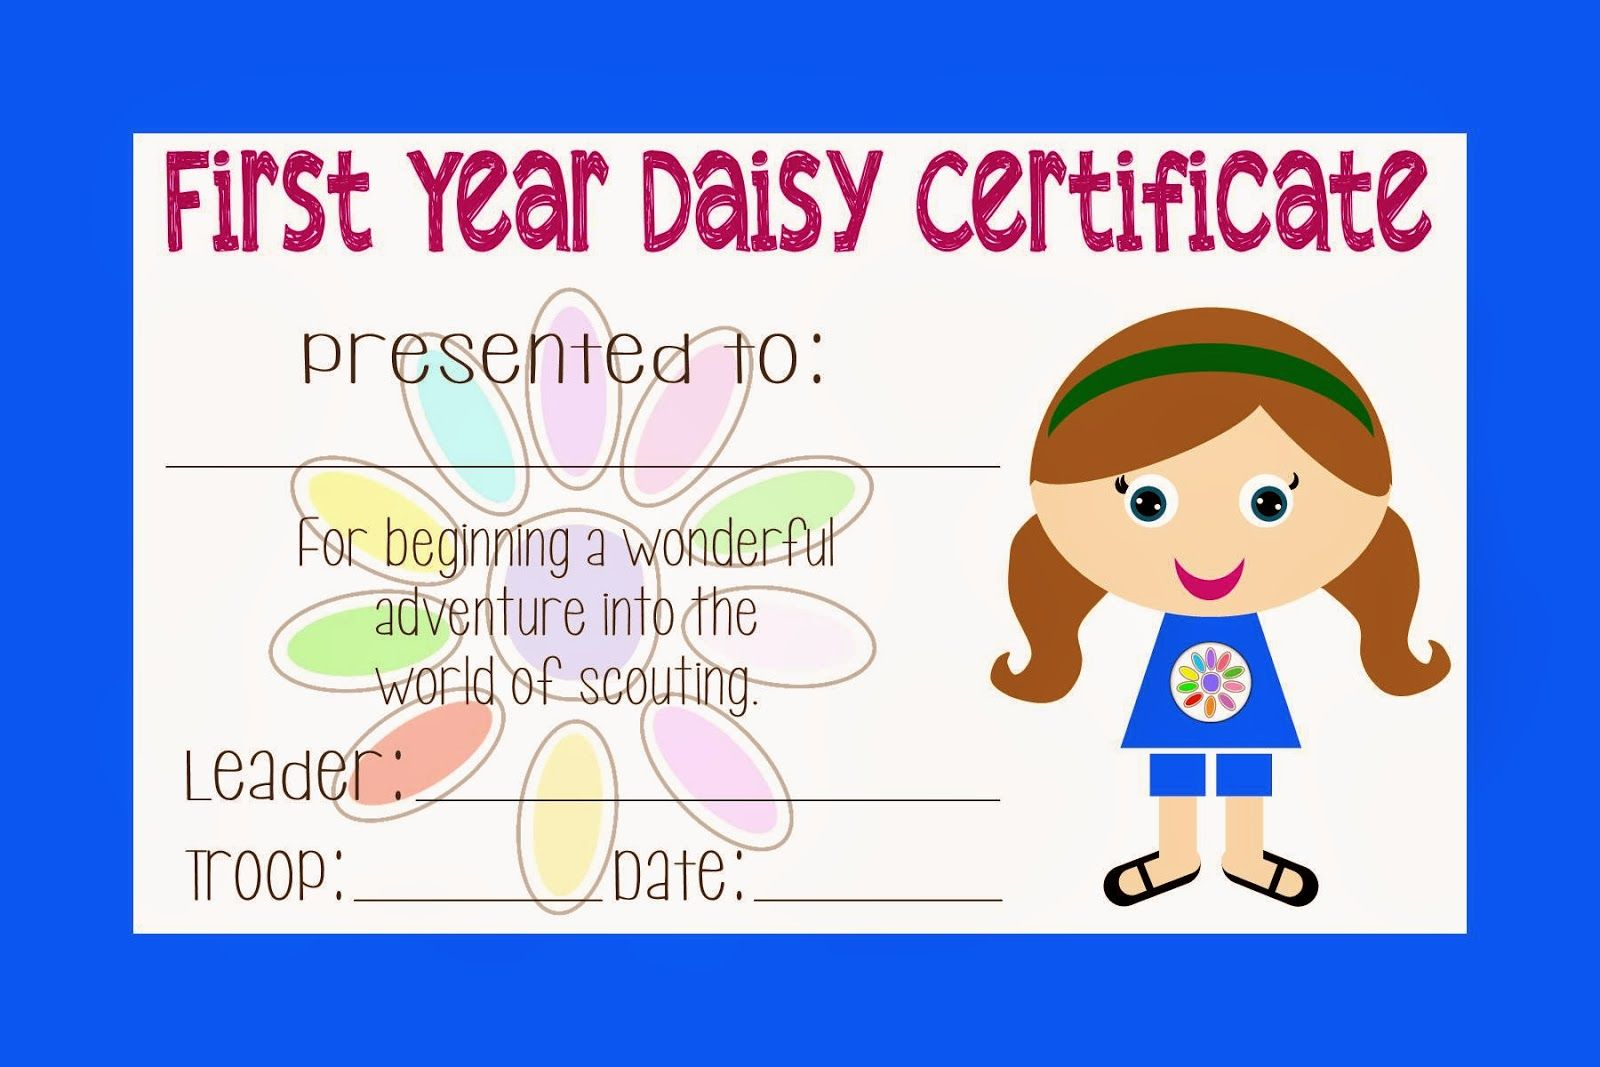 Girl Scout Daisy Certificate With Images